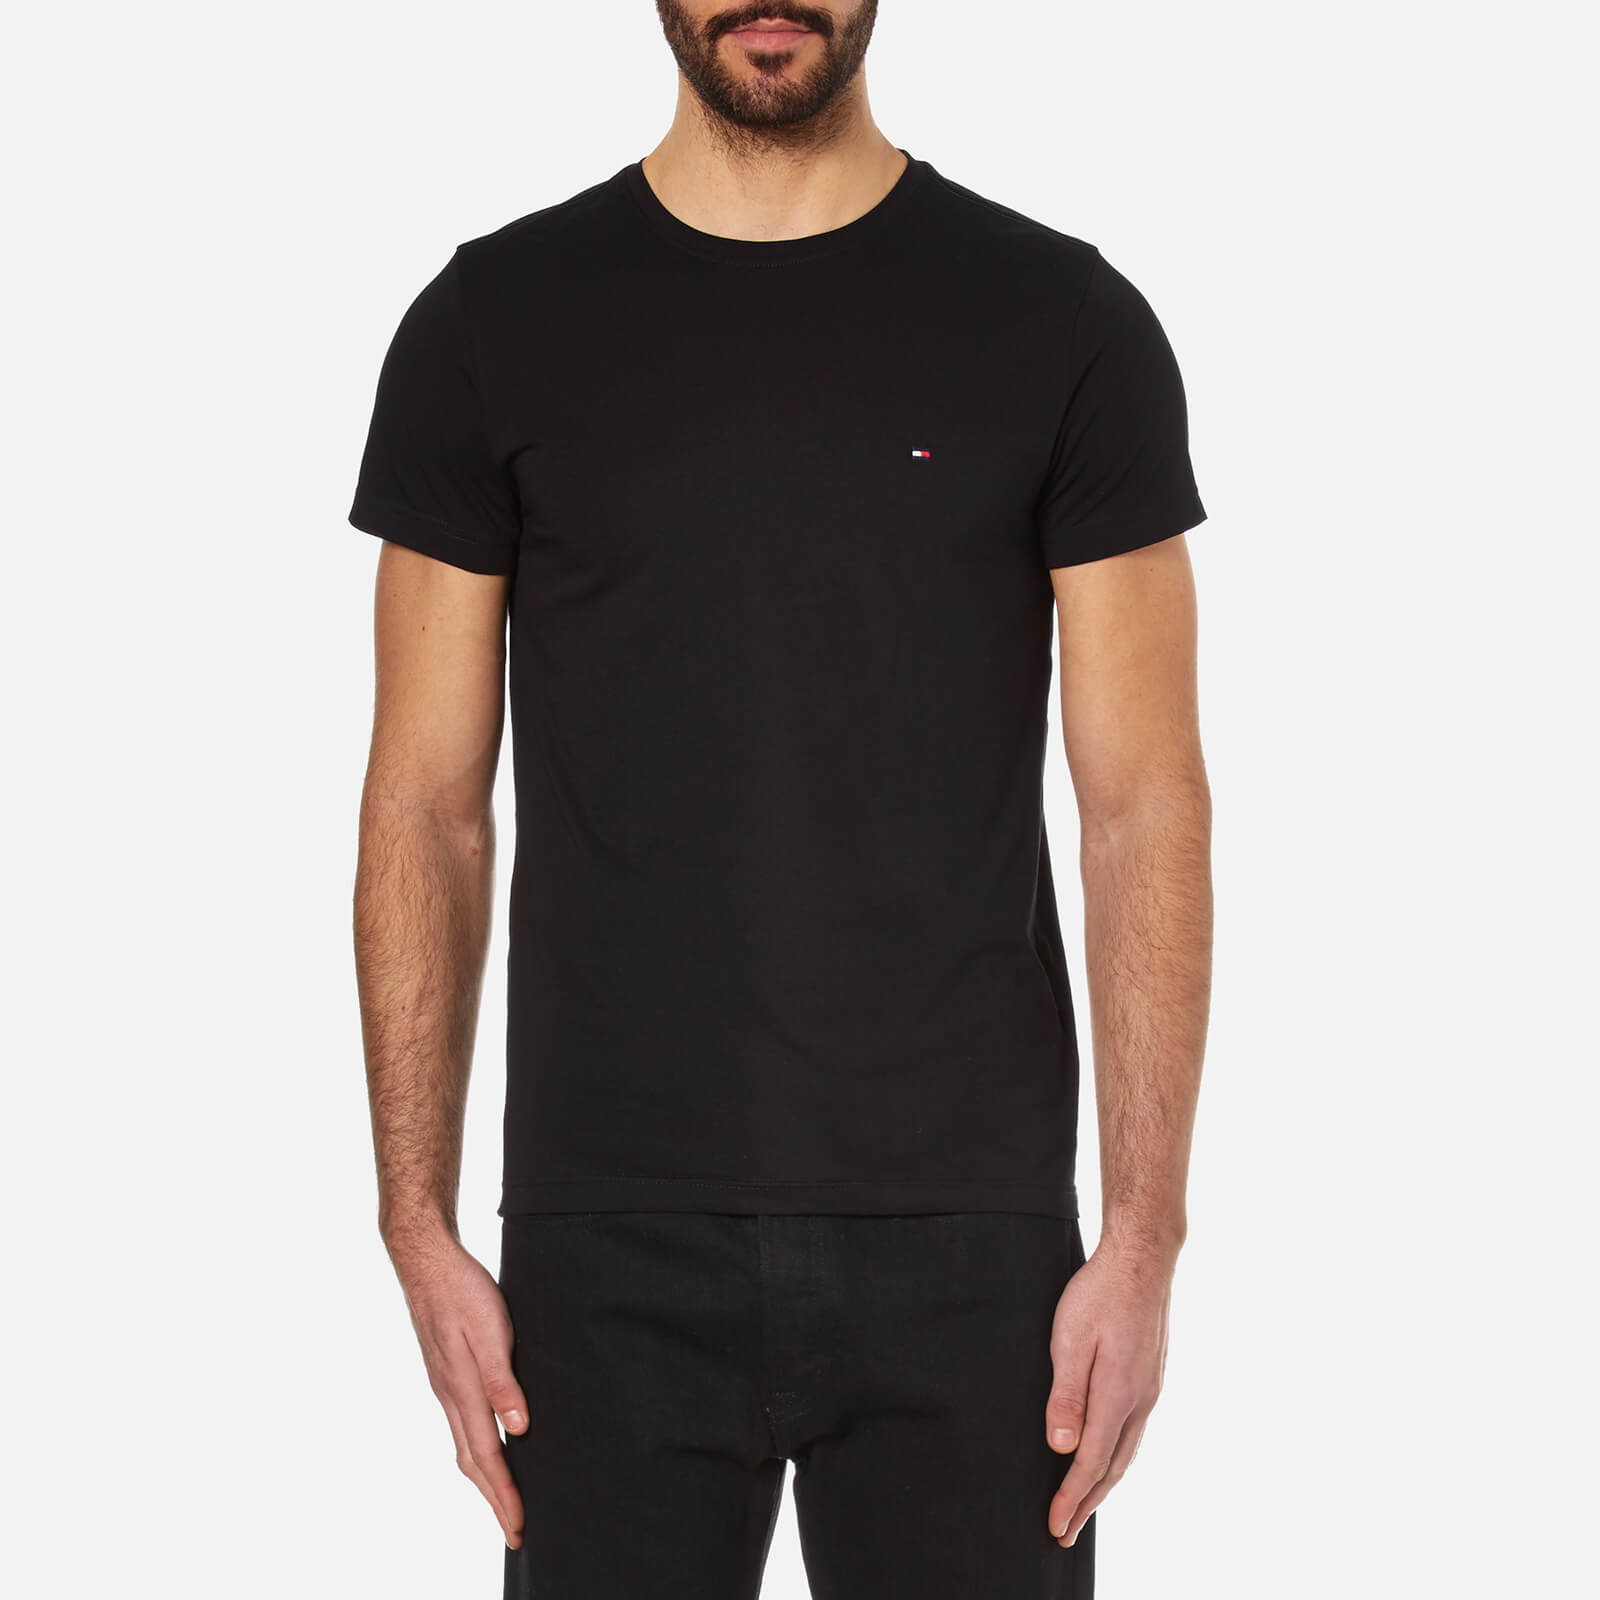 6986e814c Tommy Hilfiger Men's New Stretch Crew Neck T-Shirt - Flag Black Clothing |  TheHut.com